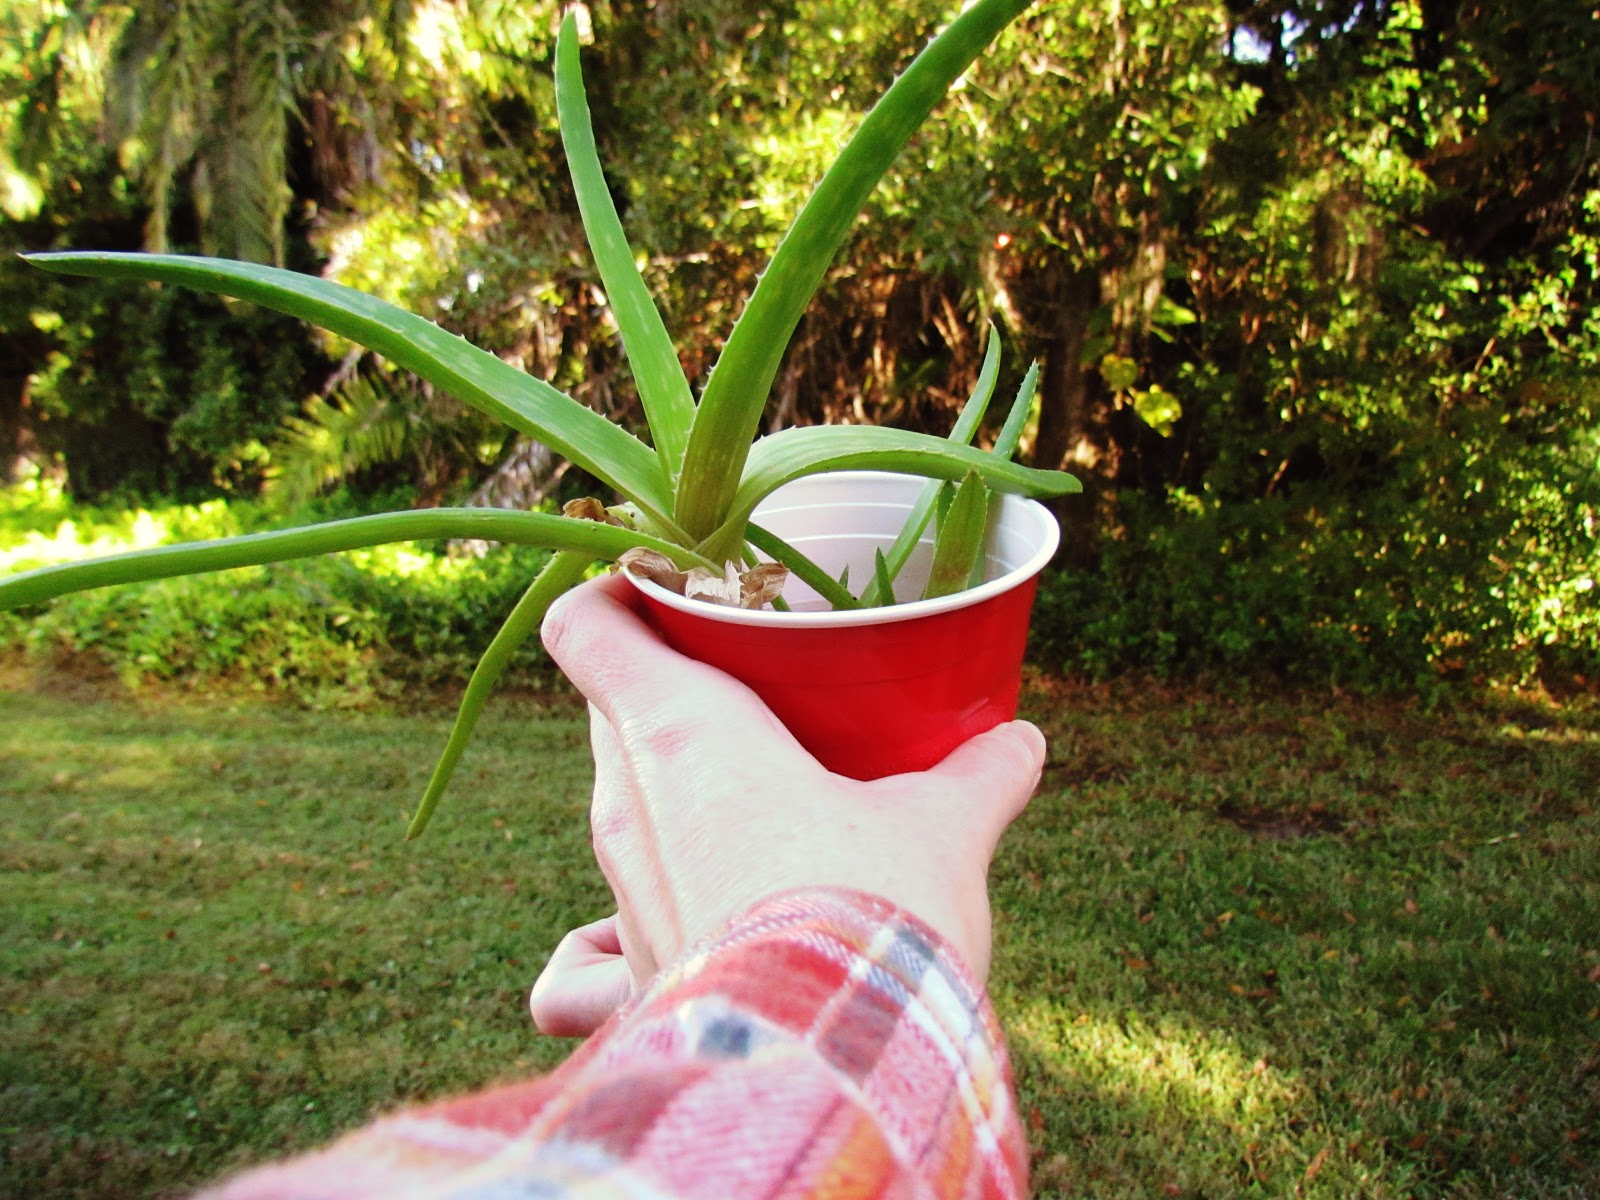 A woman holding a red cup with baby aloe vera plant and a red flannel shirt against forest green grass in the backyard of mother nature + healing remedies